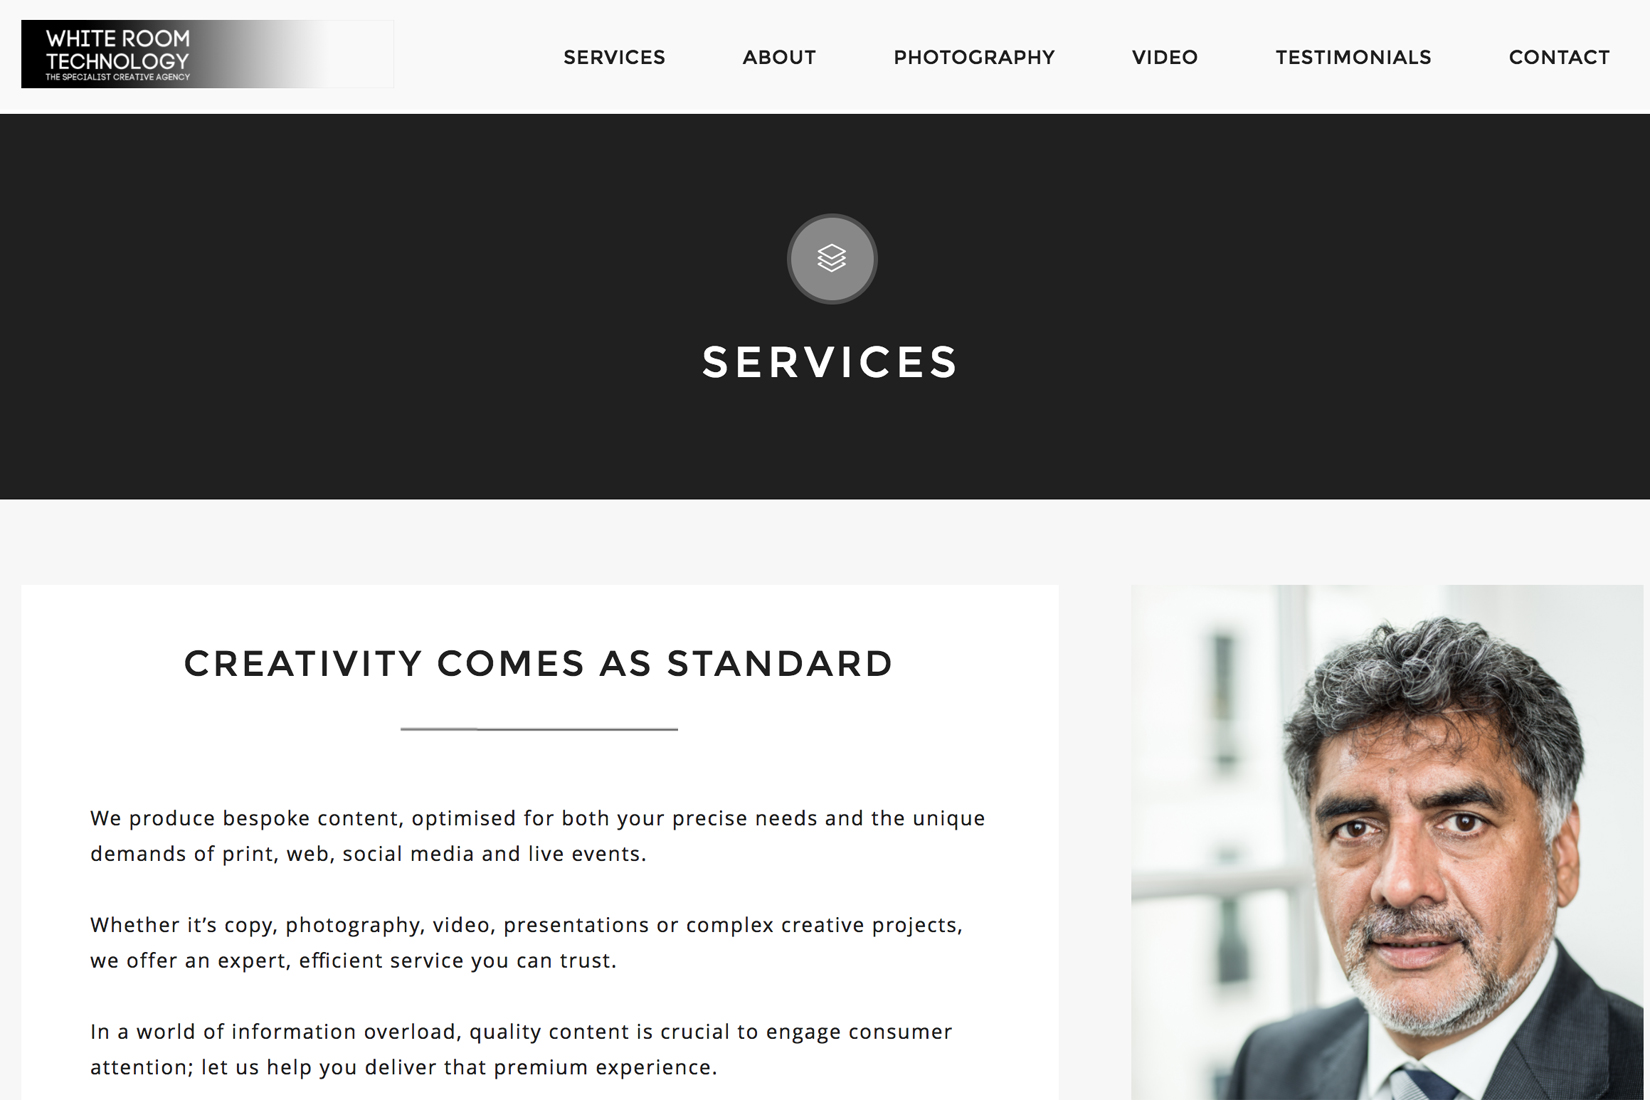 Whiteroom Technology Website by Presto Web Design - Services Page